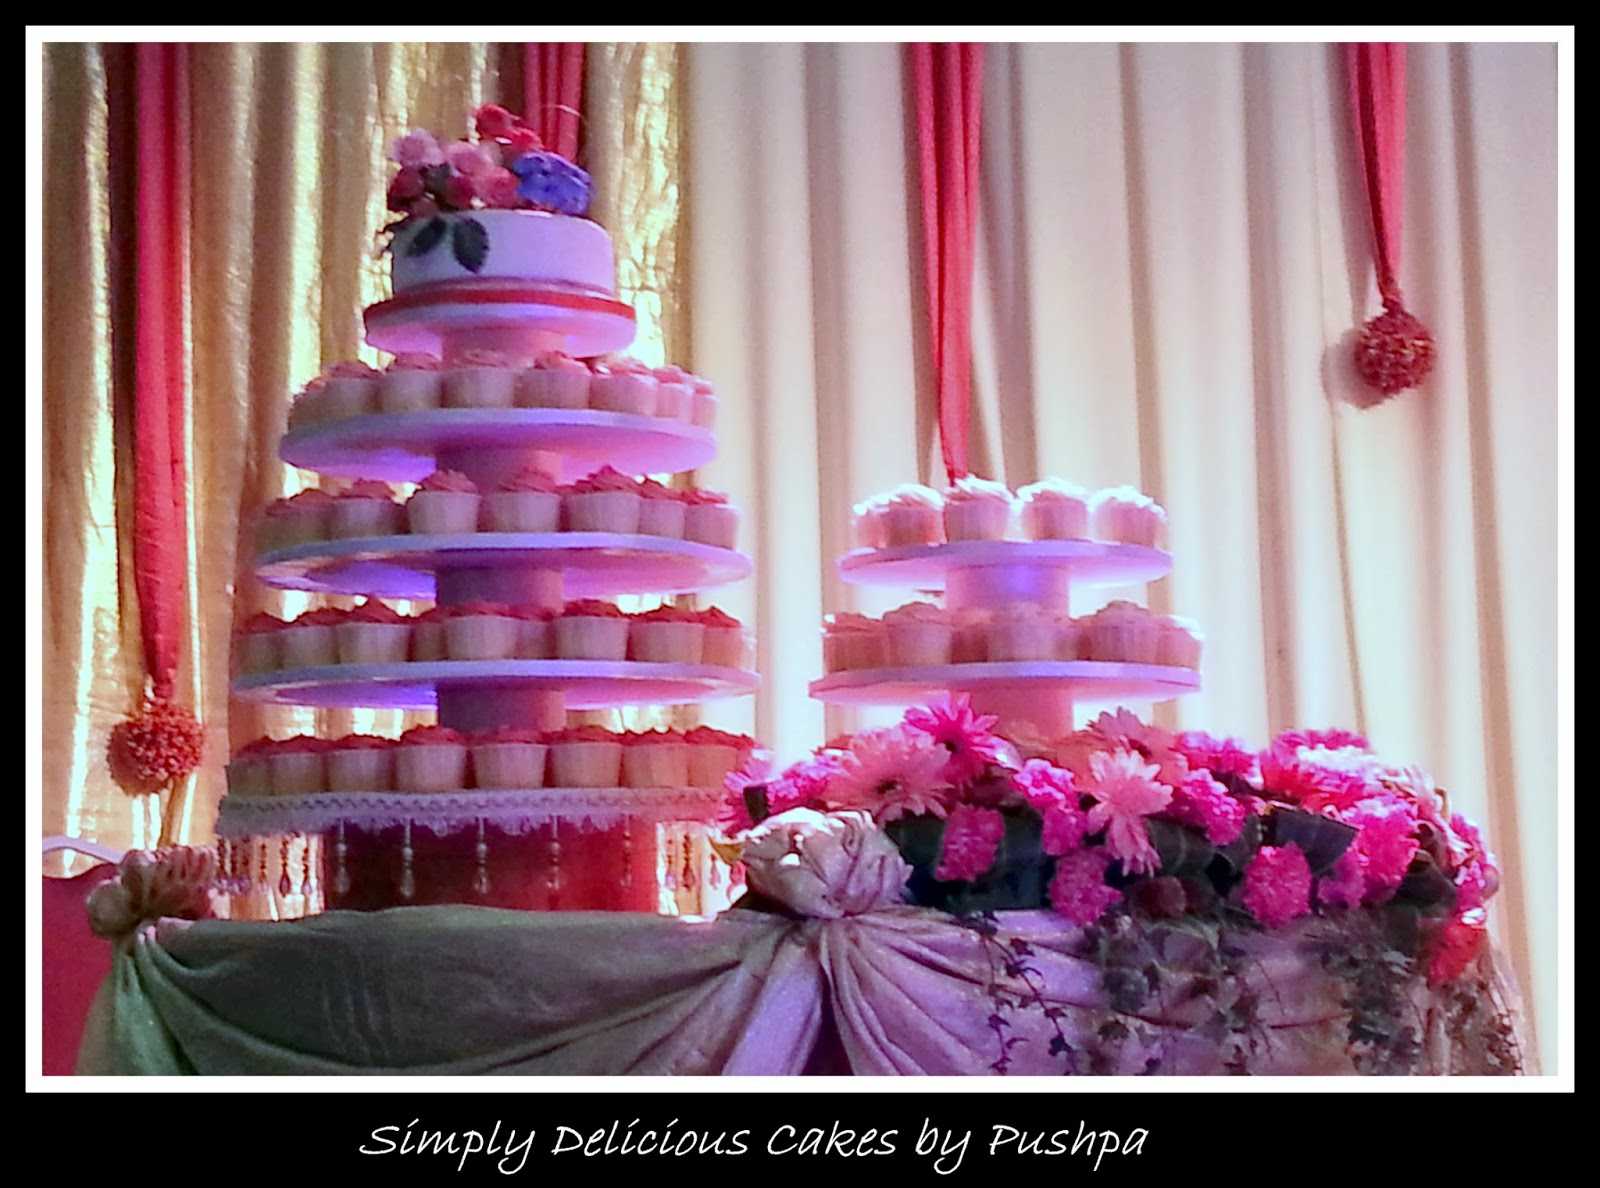 SIMPLY DELICIOUS CAKES: March 2013